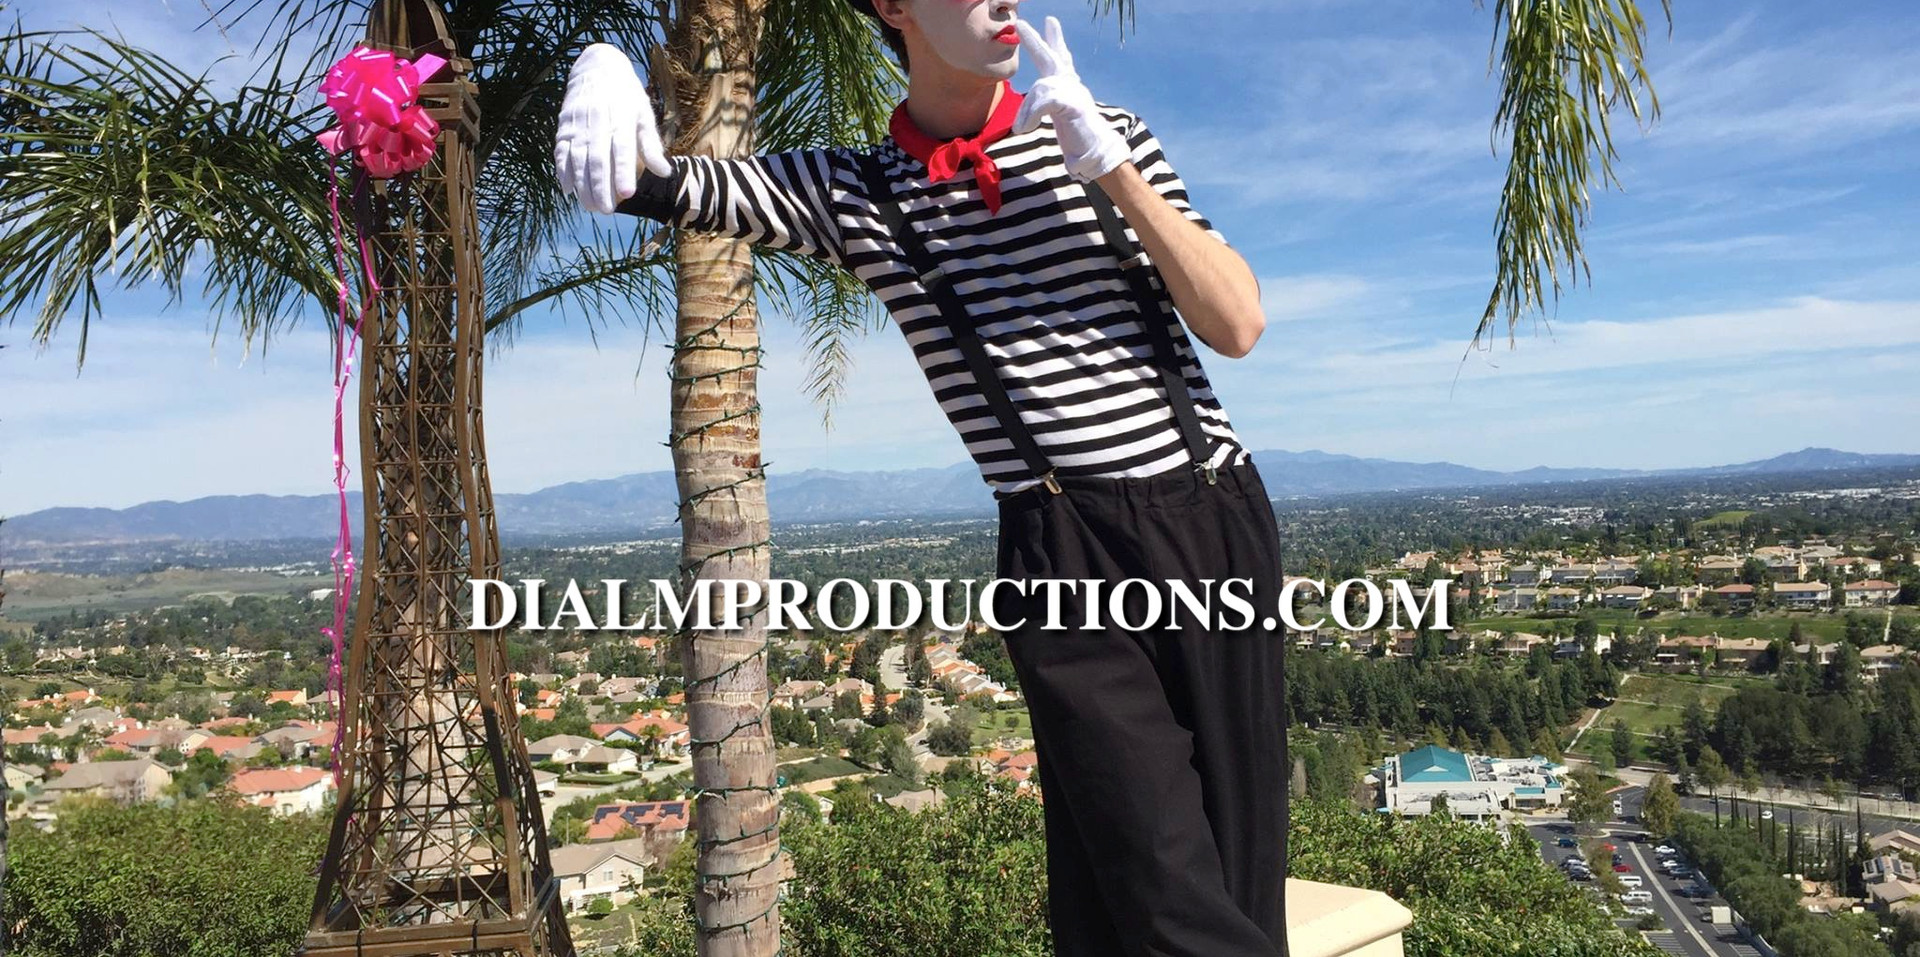 French Mime Moulin Rouge Theme Party Los Angeles Event Planner -